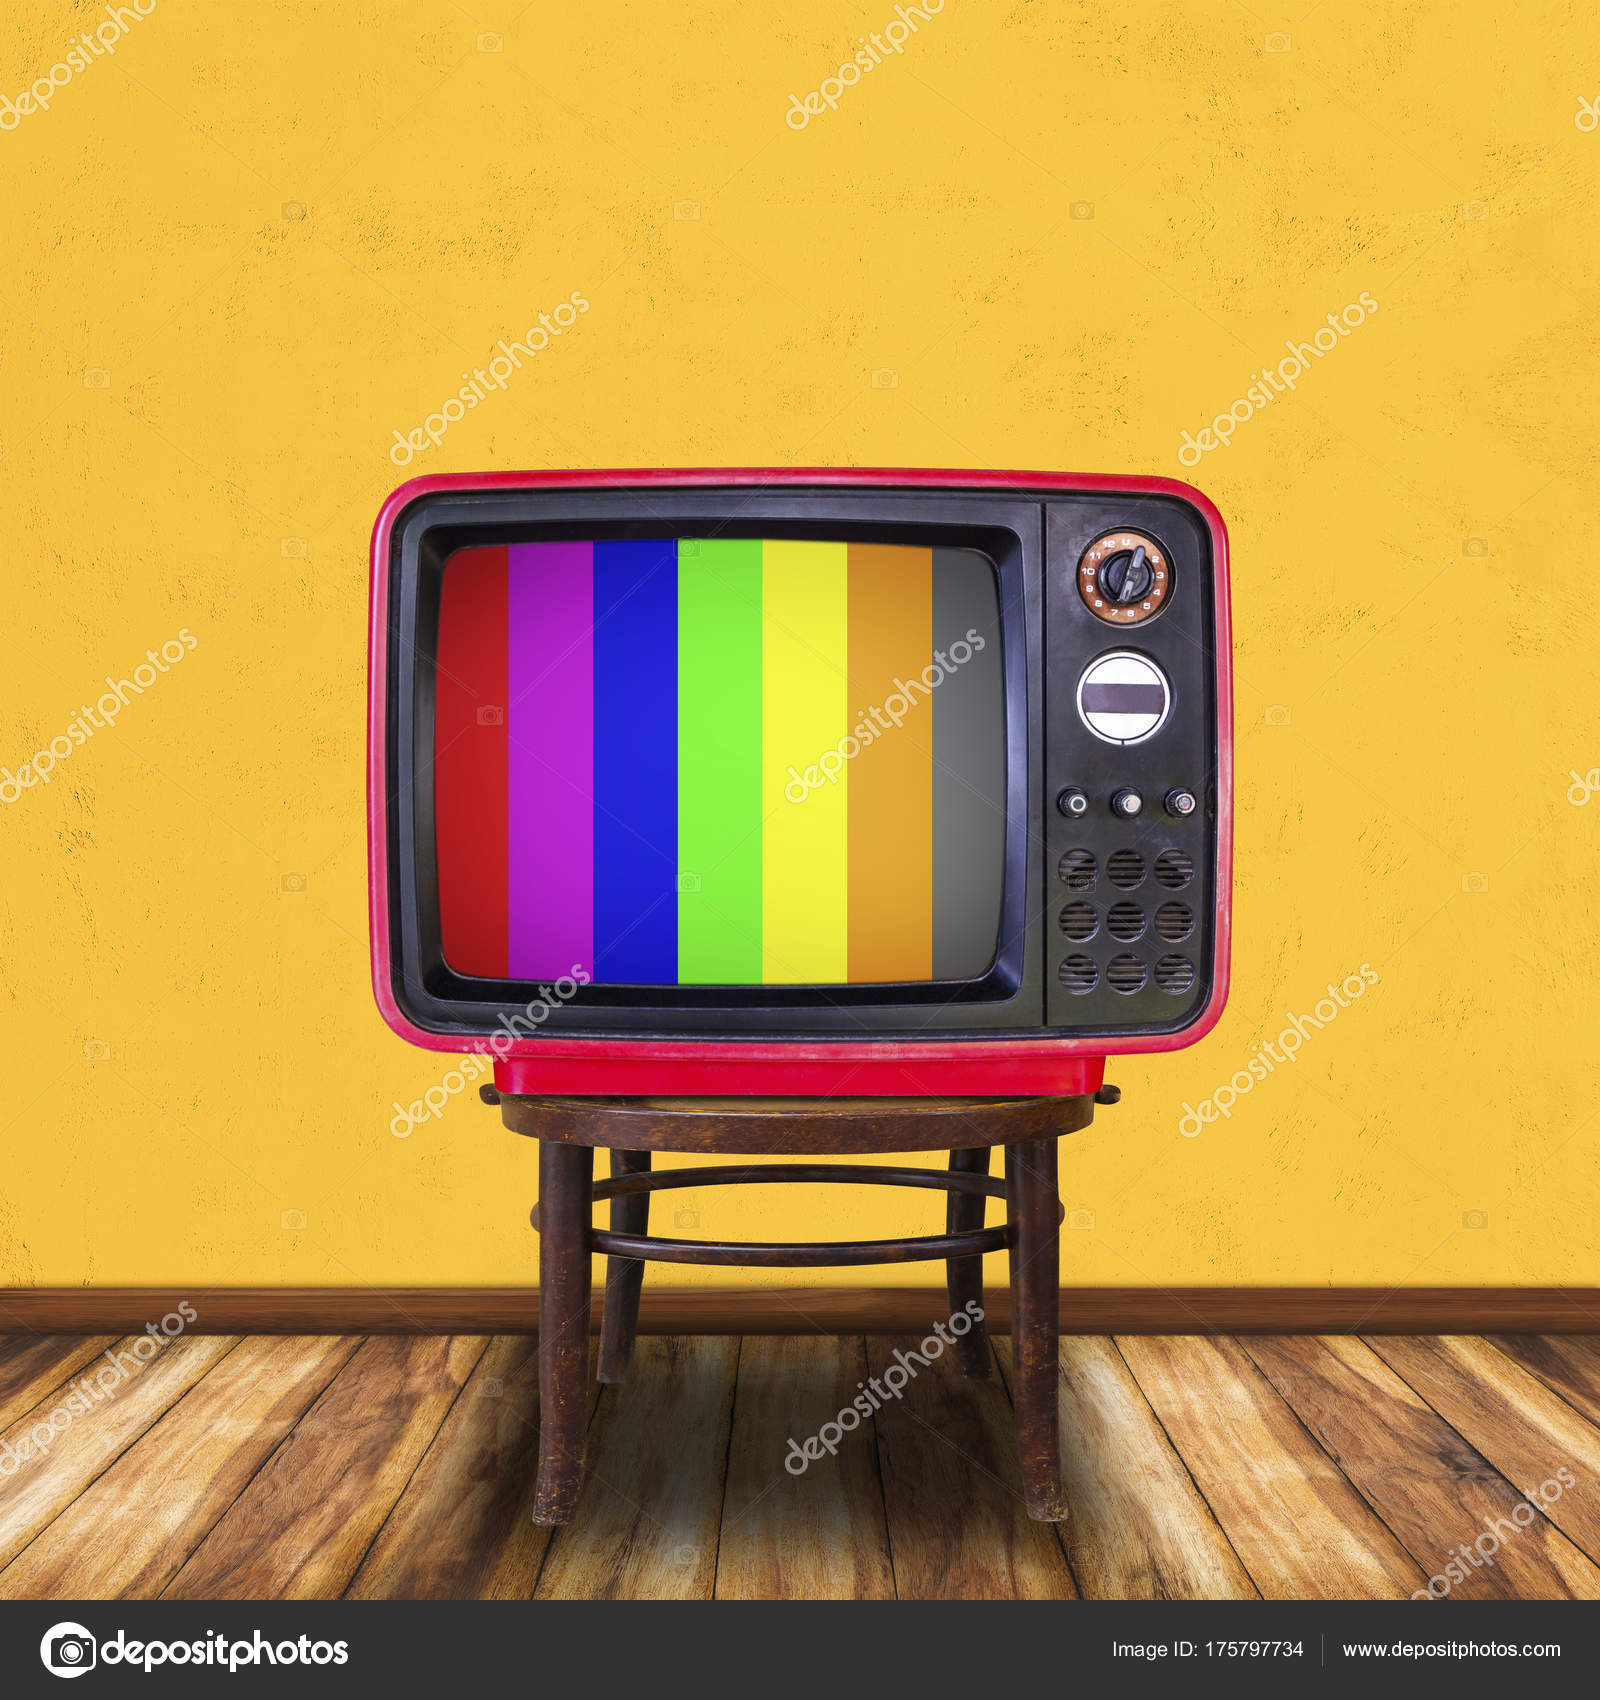 Old television on wood chair in yellow room background. — Stock ...